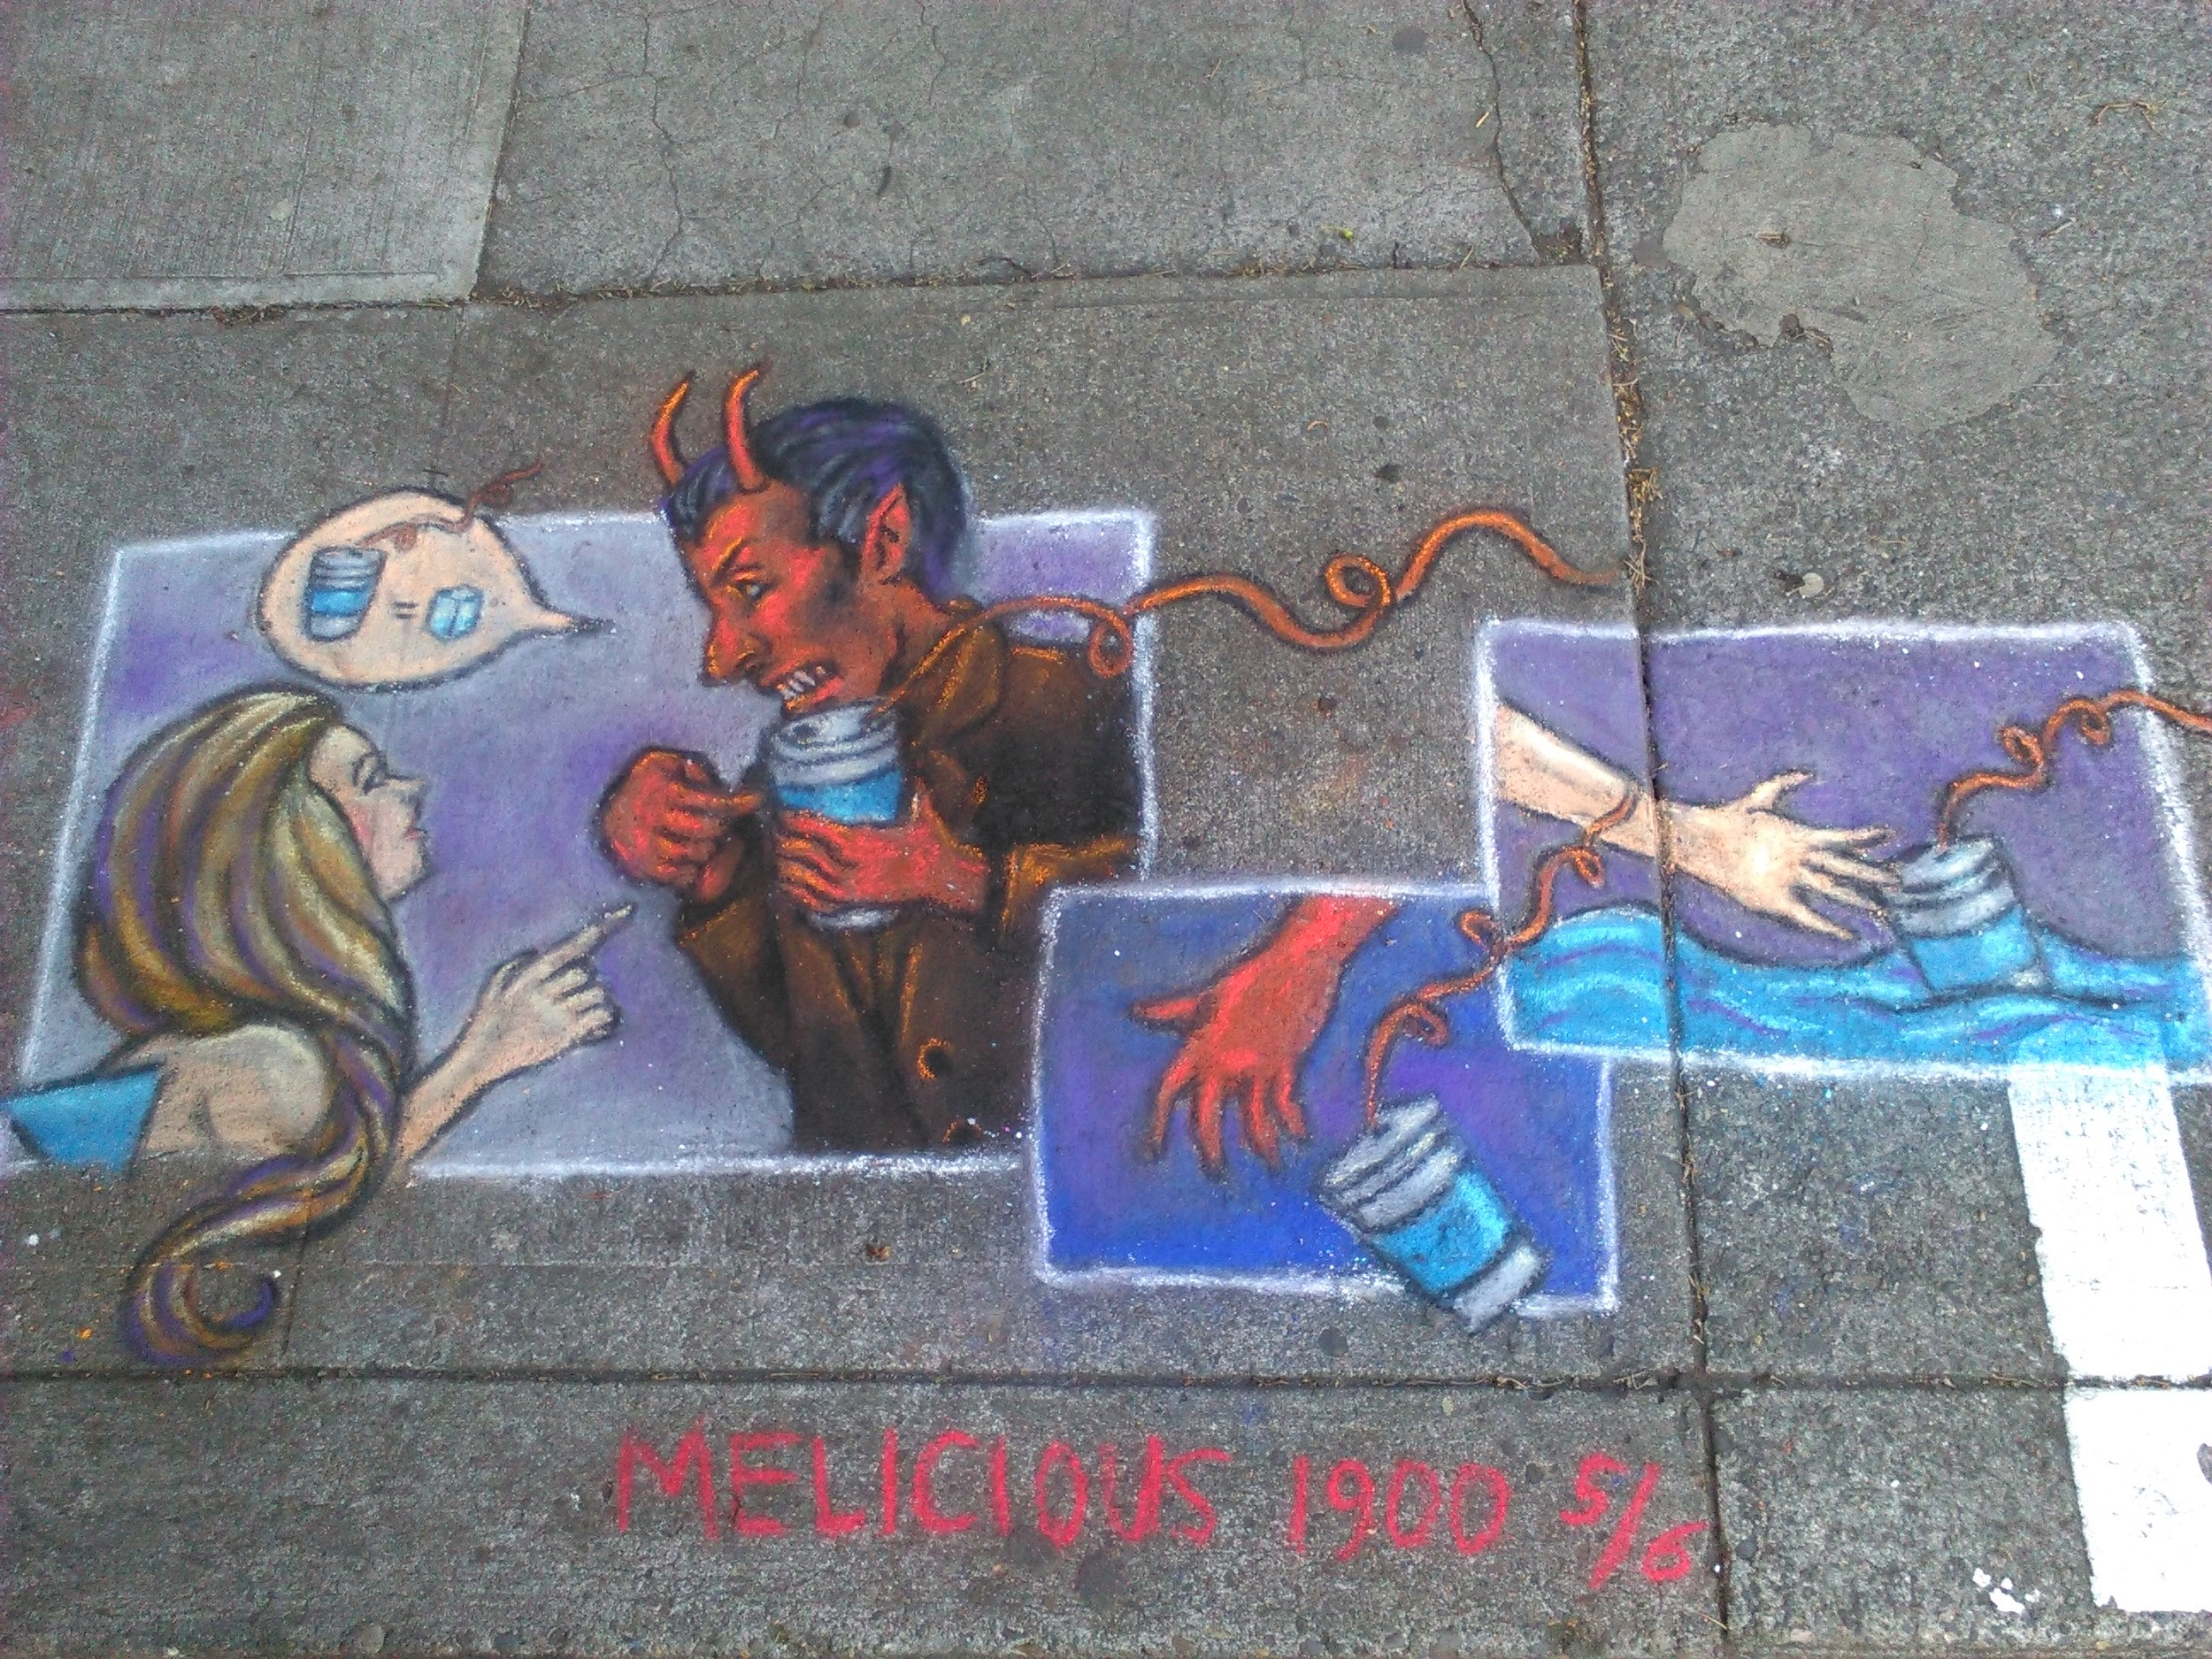 The 5th drawing where the mermaid asks what the devil he is drinking. Near NW 2nd & Couch.